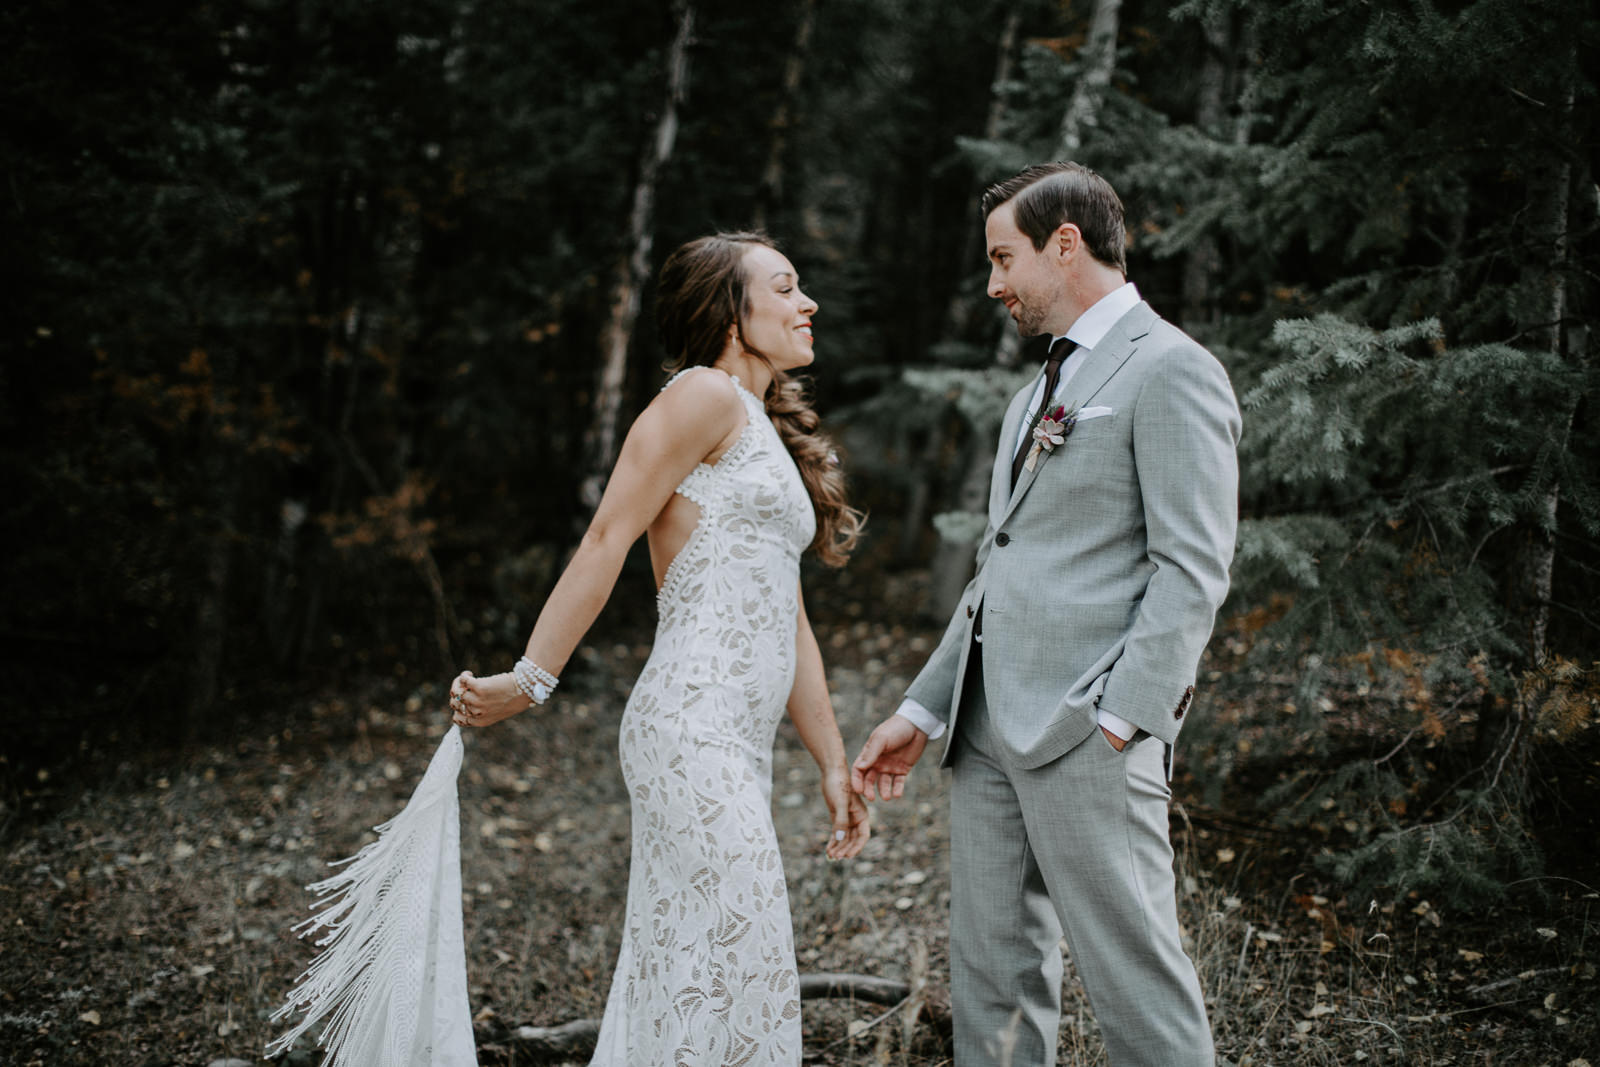 Smiling bridal couple seeing each other for the first time during a private moment together